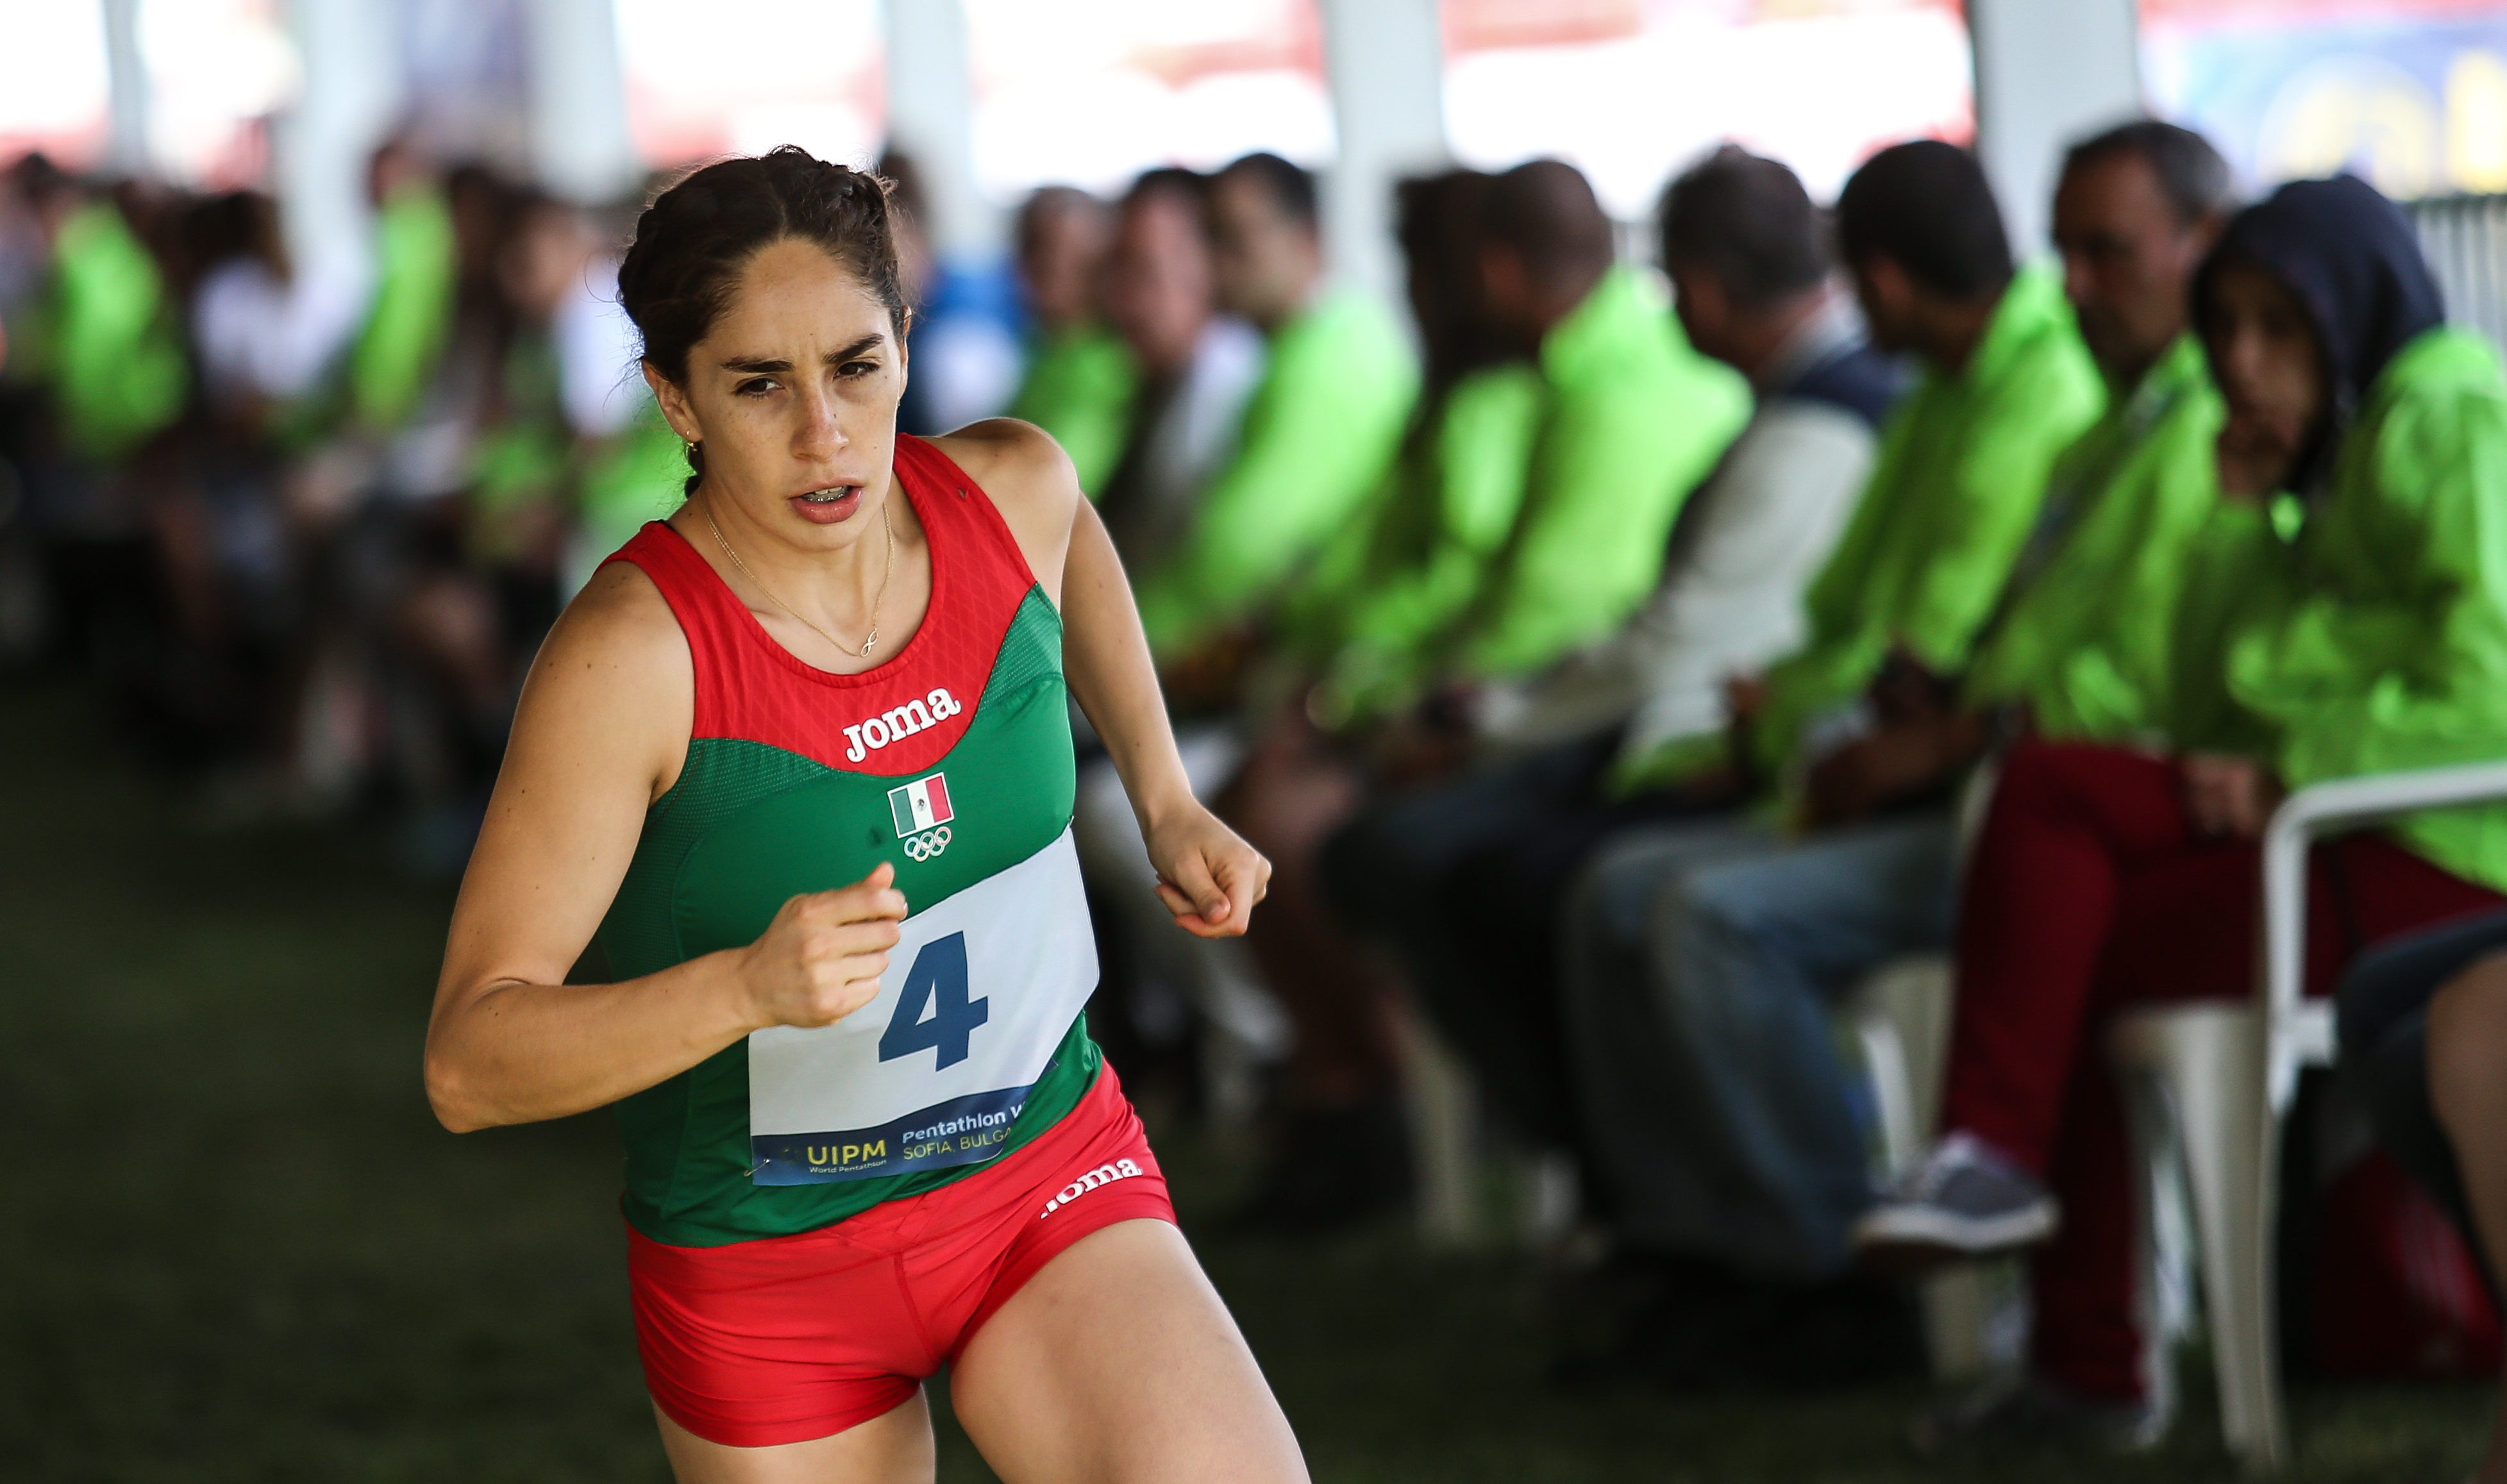 Tamara Vega Union Internationale De Pentathlon Moderne